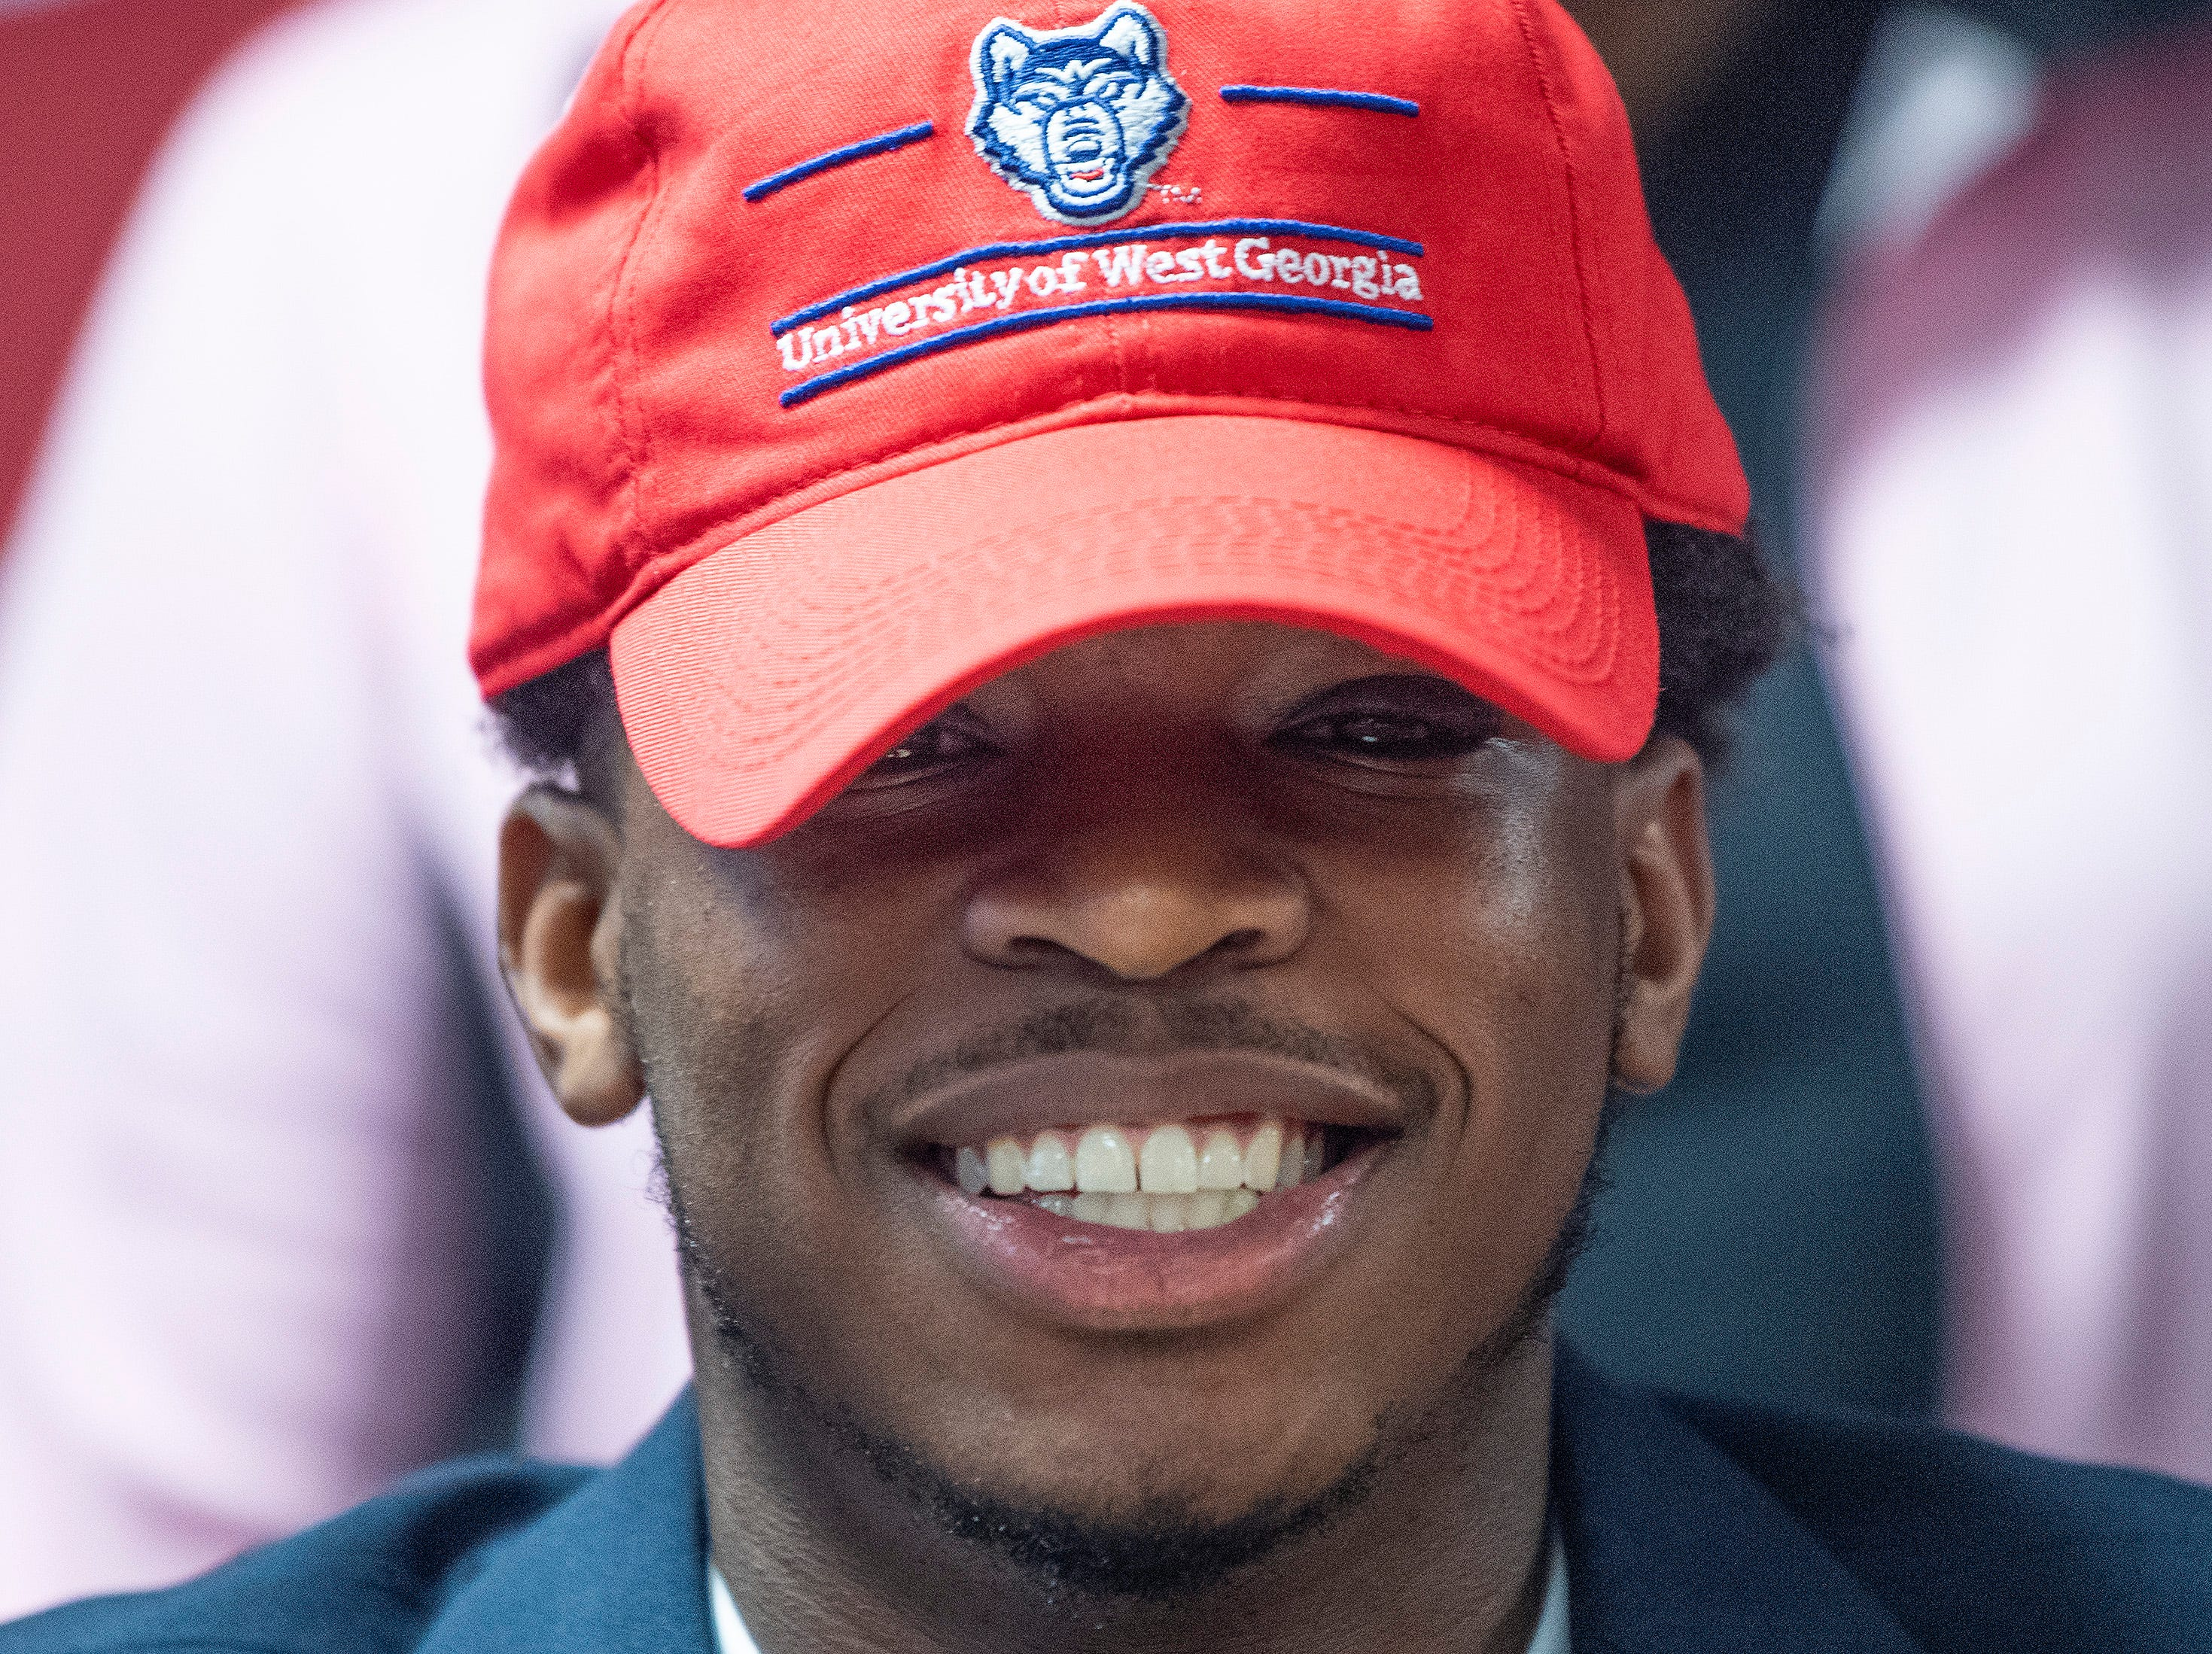 Prattville's Malik Smith signs to play at West Georgia during college football signing day at the school's campus in Pratttville, Ala., on Wednesday February 6, 2019.